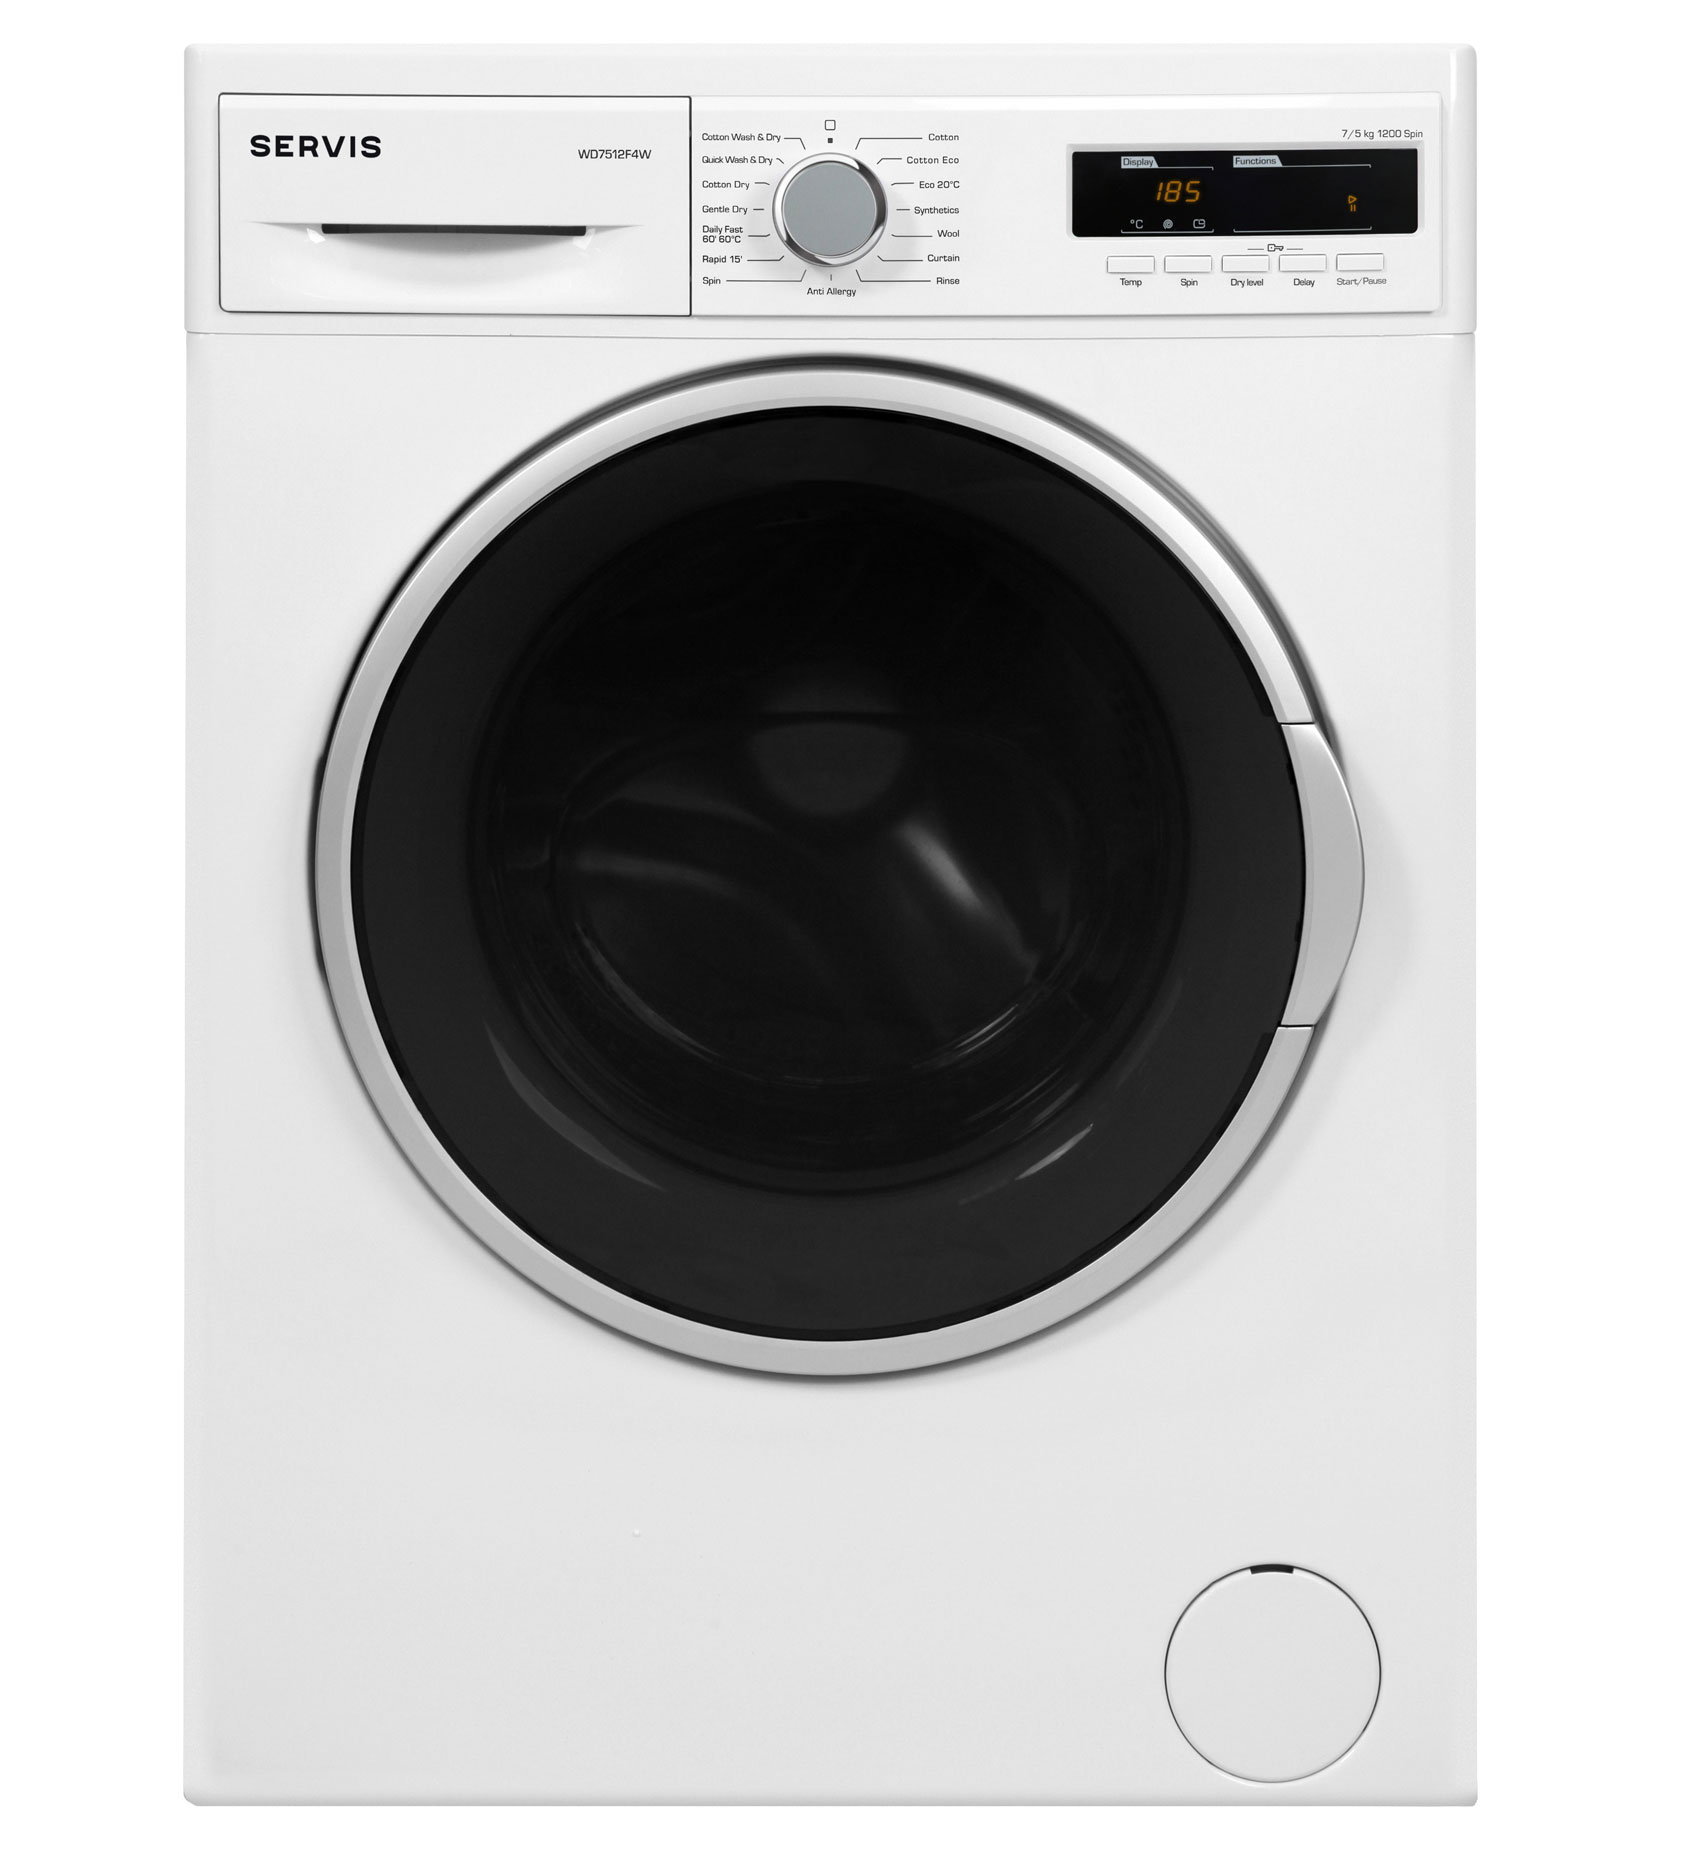 WD7512F4W - 7kg - Washer Dryer